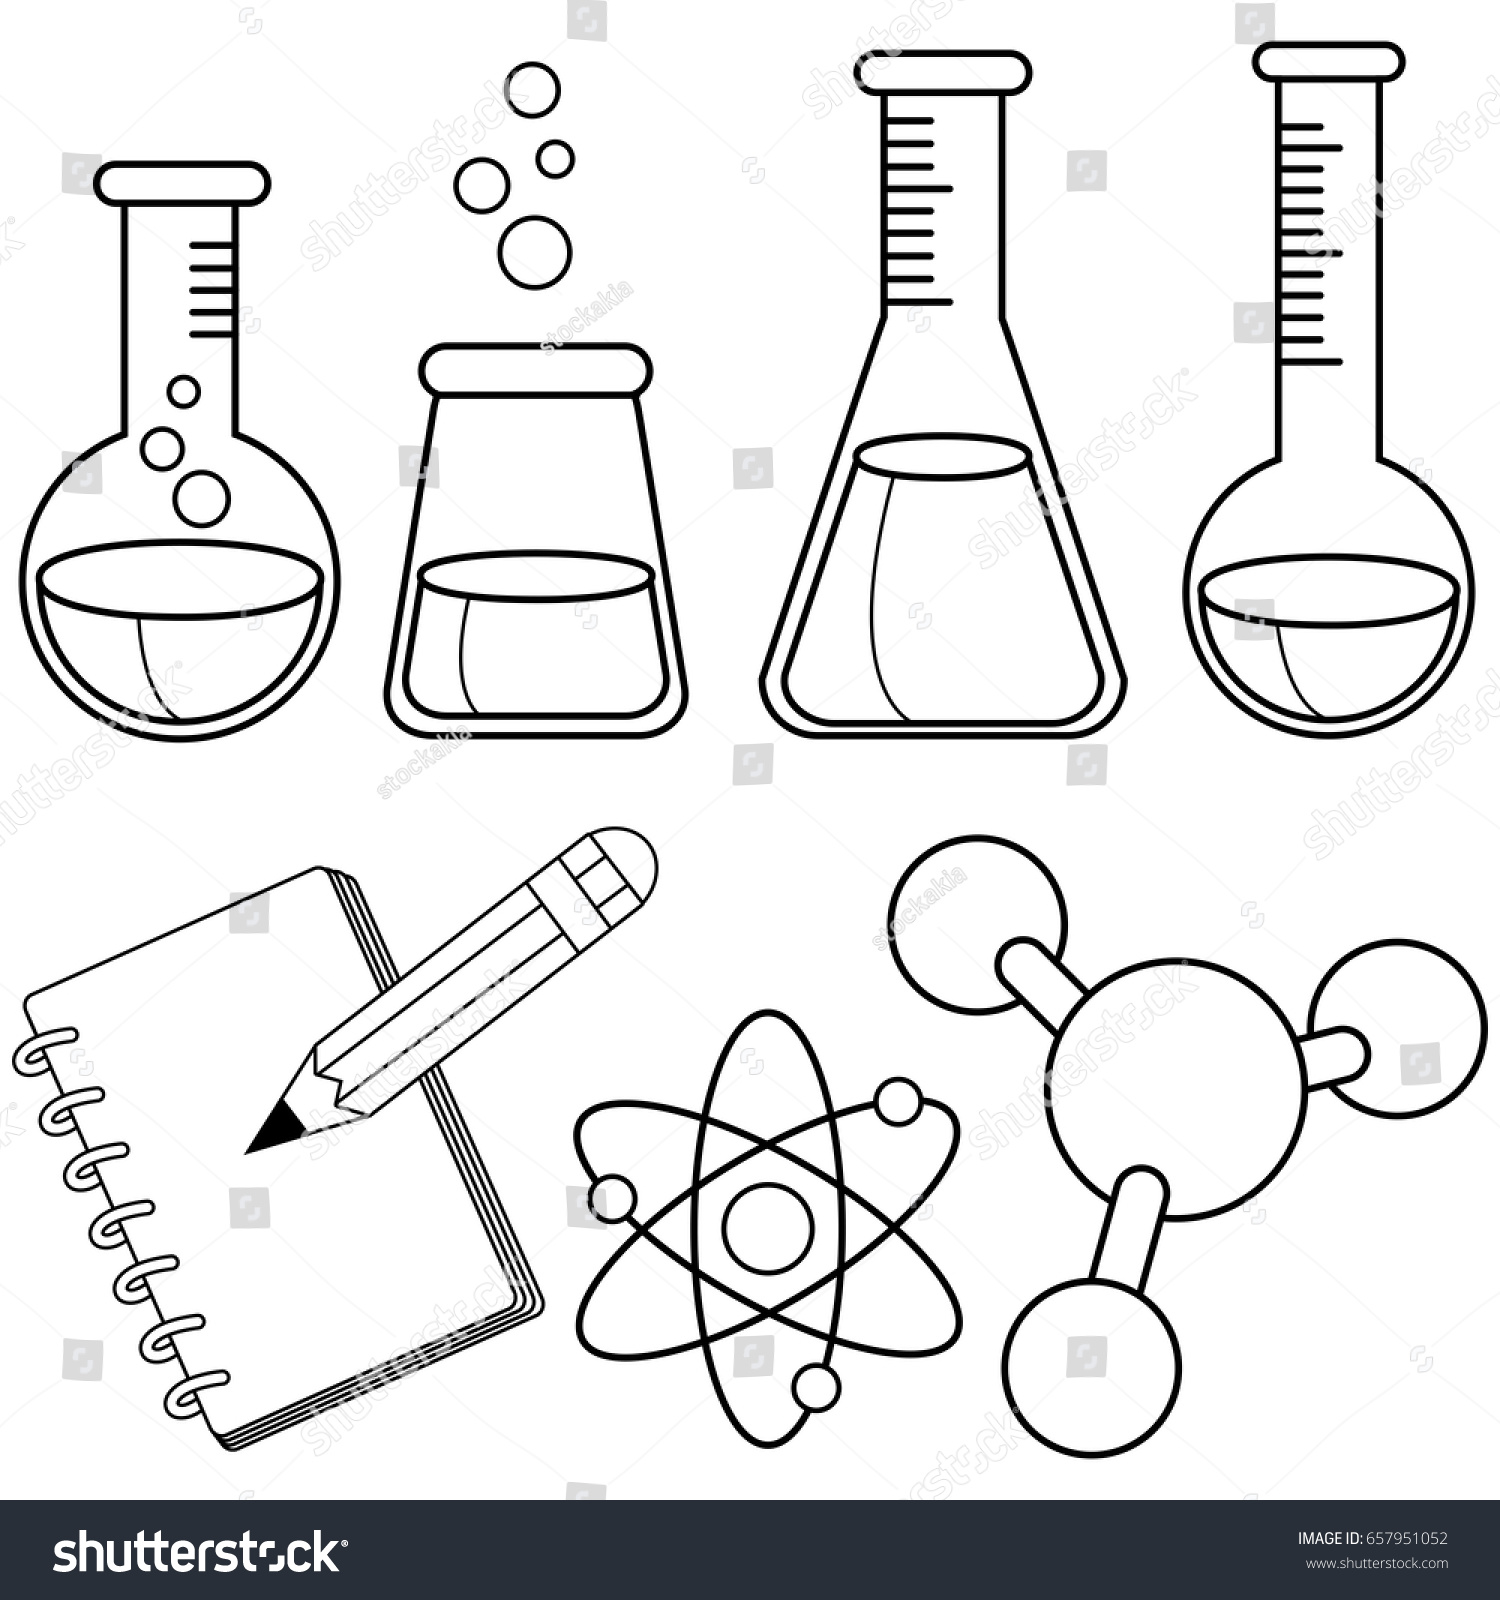 Science Chemistry Set Black White Coloring Stock Vector 657951052 ...